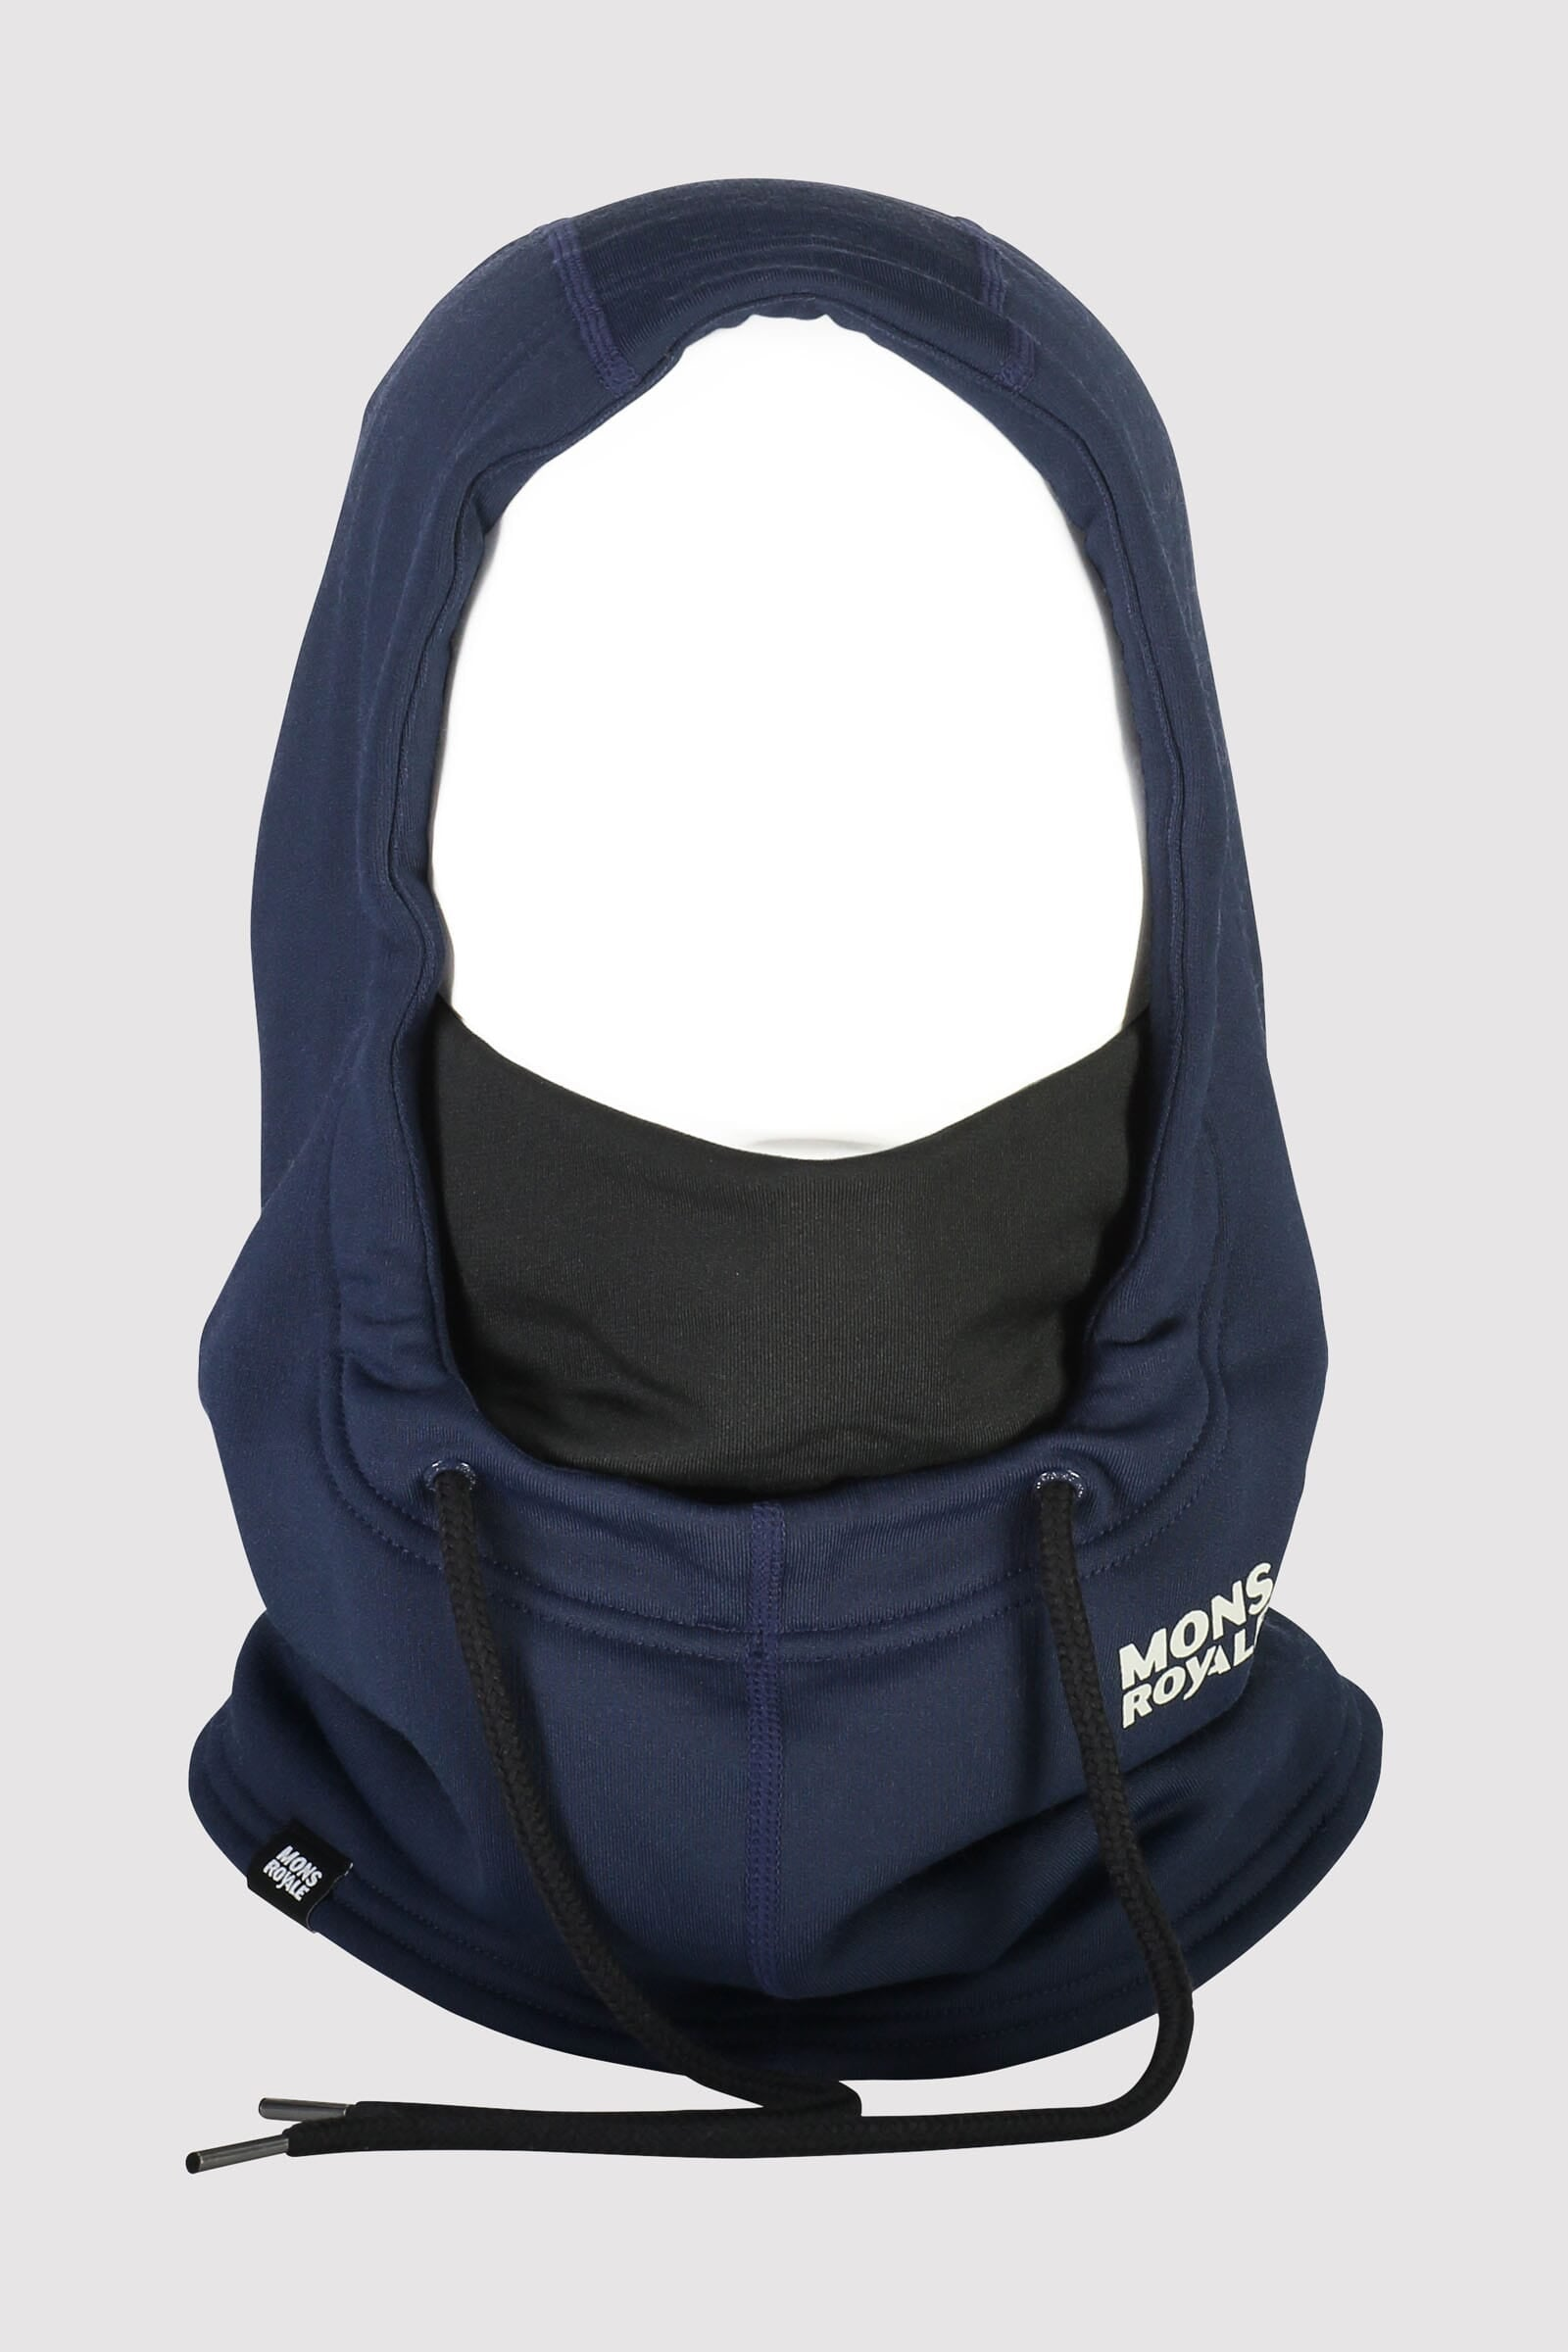 Decade Wool Fleece Hood - Navy